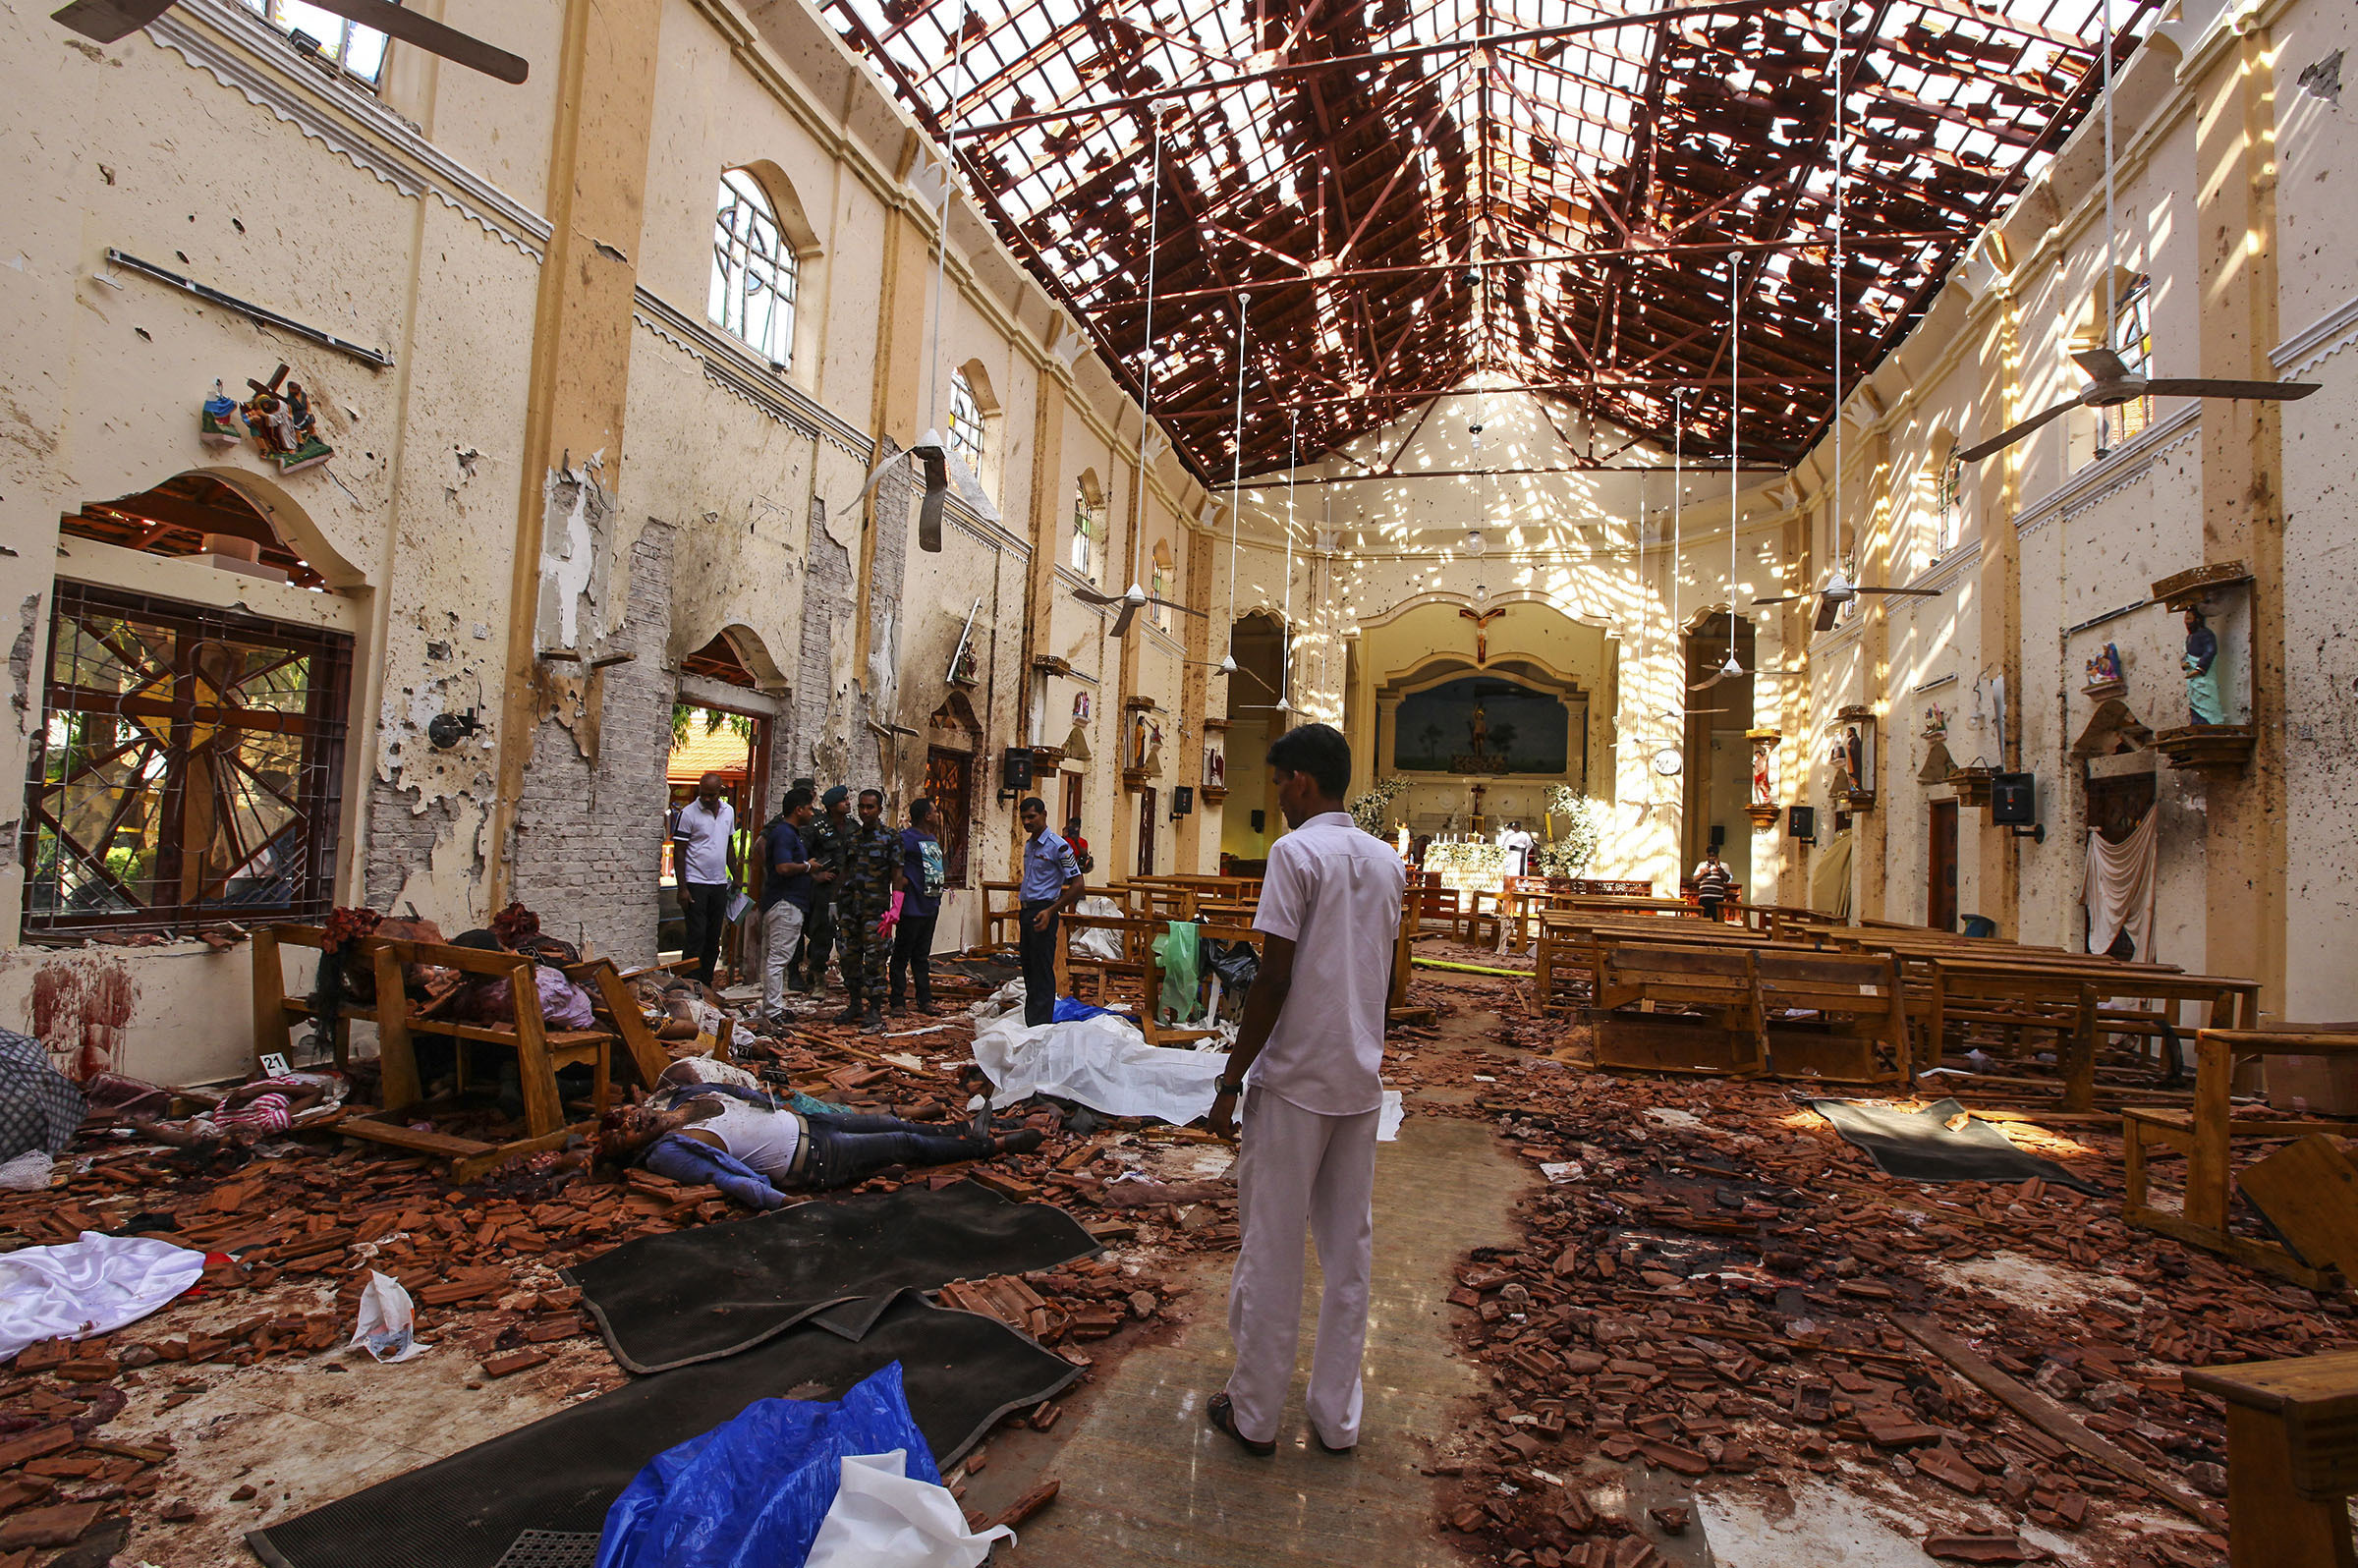 Denmark's billionaire loses three children in Sri Lanka's serial blasts